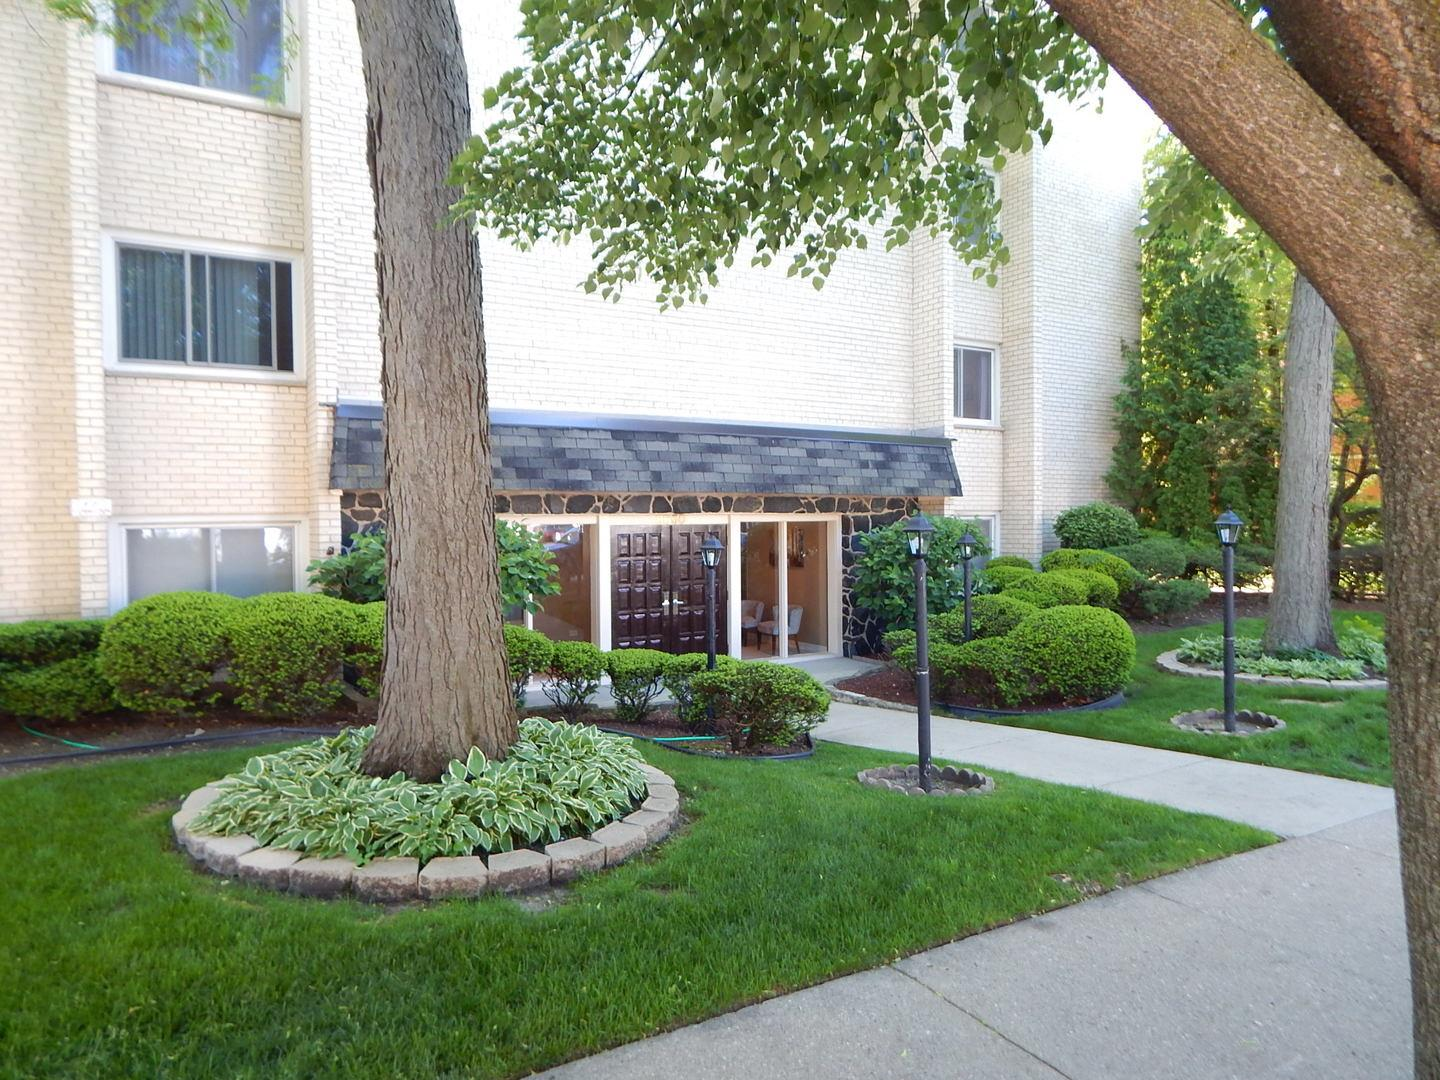 8650 FERRIS Avenue #301, Morton Grove, IL 60053 - #: 10728751